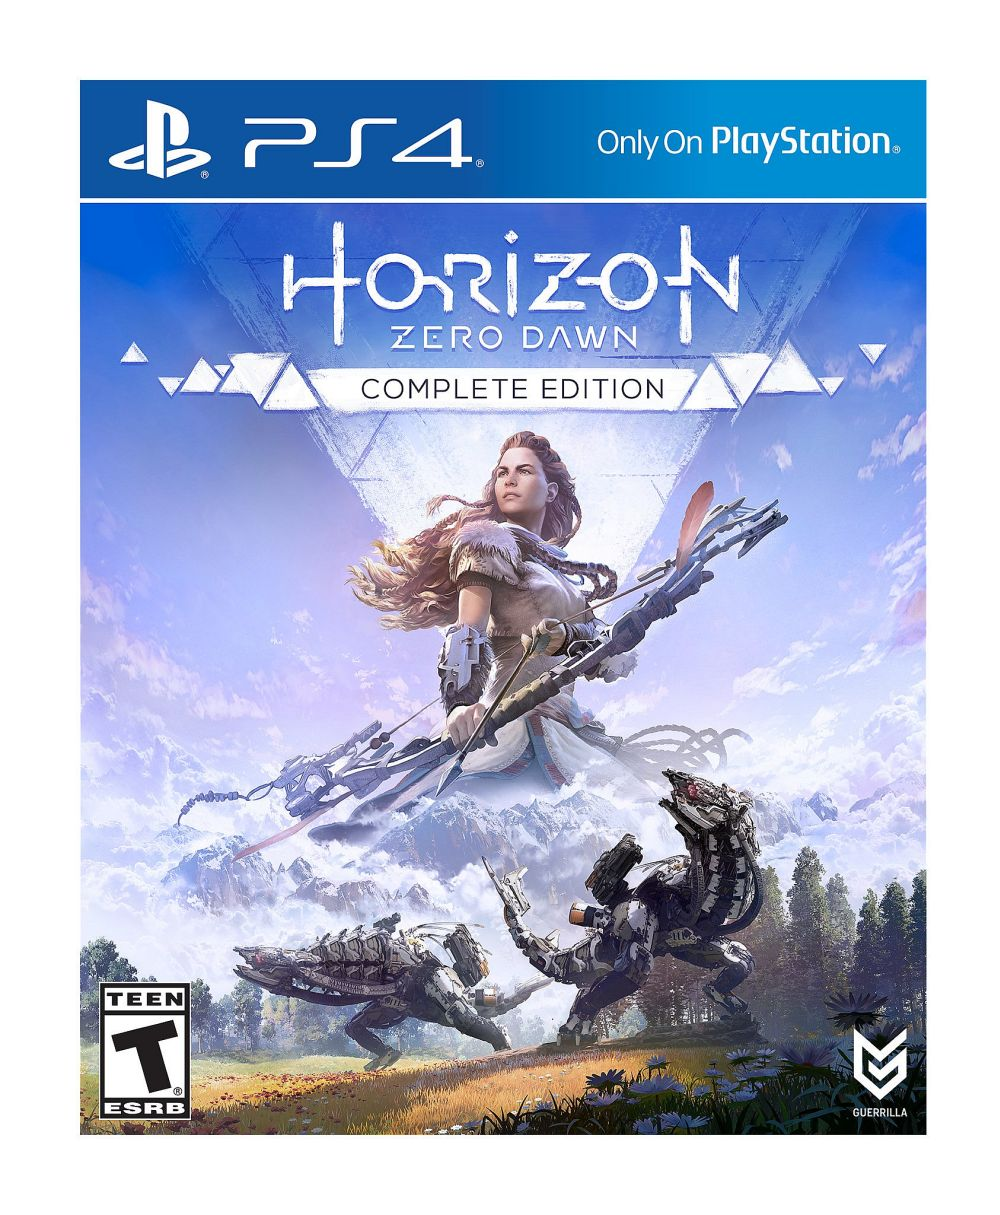 Horizon Zero Dawn: Complete Edition out in December, includes The Frozen Wilds expansion